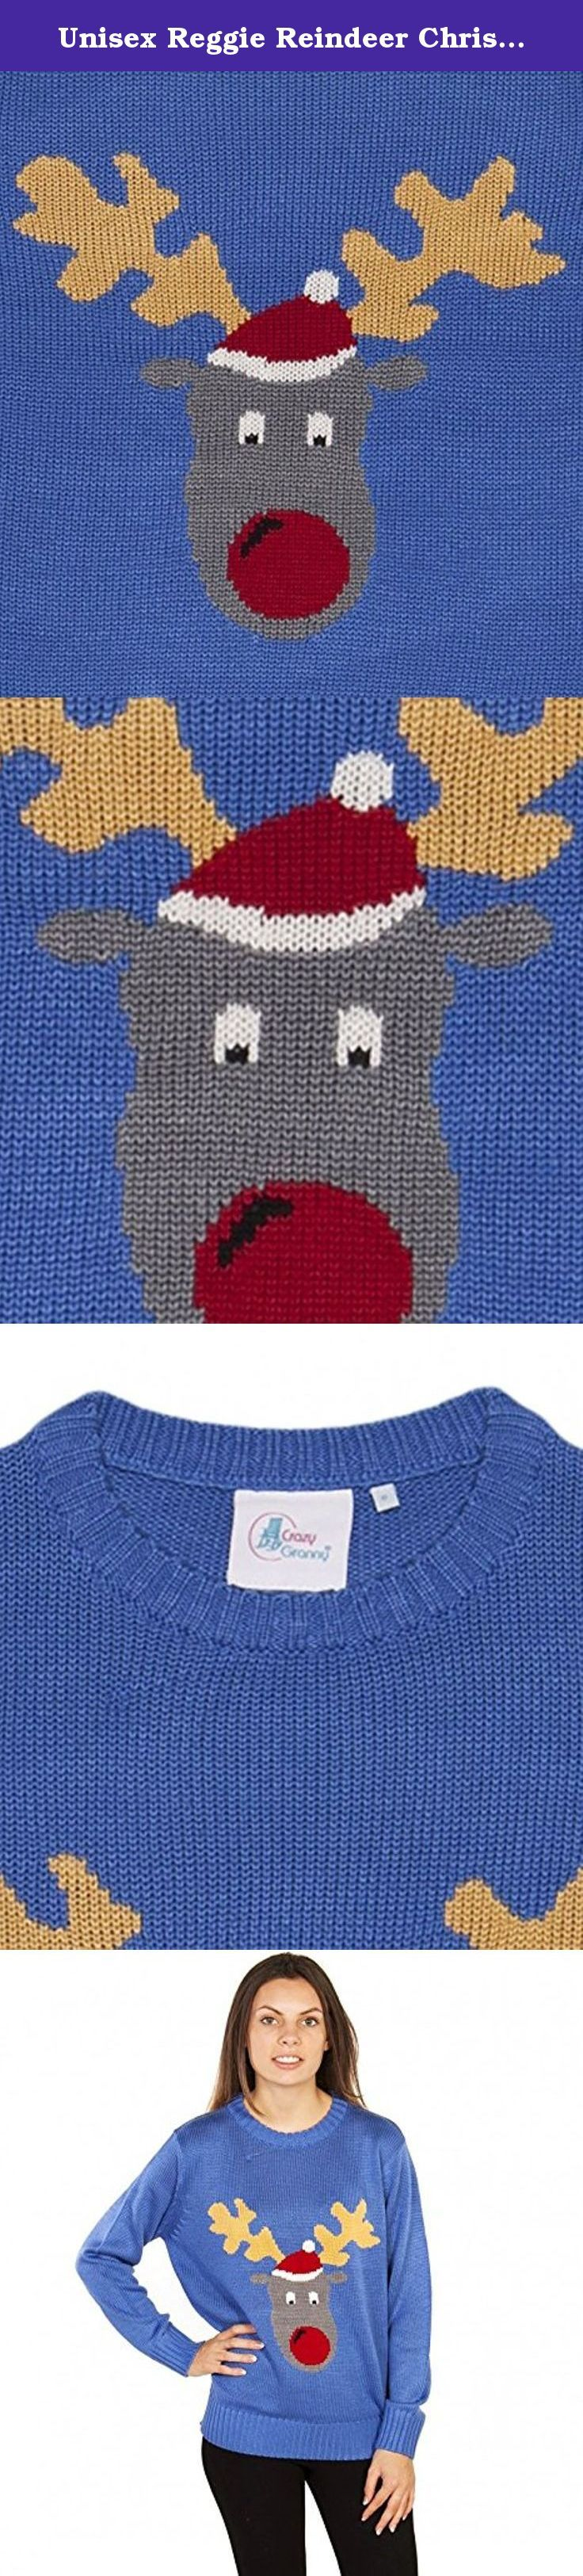 Unisex Reggie Reindeer Christmas Jumper from Crazy Granny Clothing. - Unisex Reggie Reindeer Christmas Jumper from Crazy Granny Clothing - Knitted unisex jumper - Made from 85% acrylic, 15% wool - Machine washable - Complete with branded metal tag - Please check our custom size chart for your perfect fit . Just like granny makes, the famous Reggie Reindeer jumper (as seen on TV's This Morning, Take Me Out and tons more shows) is the stereotypical cheesy Christmas sweater! Perfect for your...